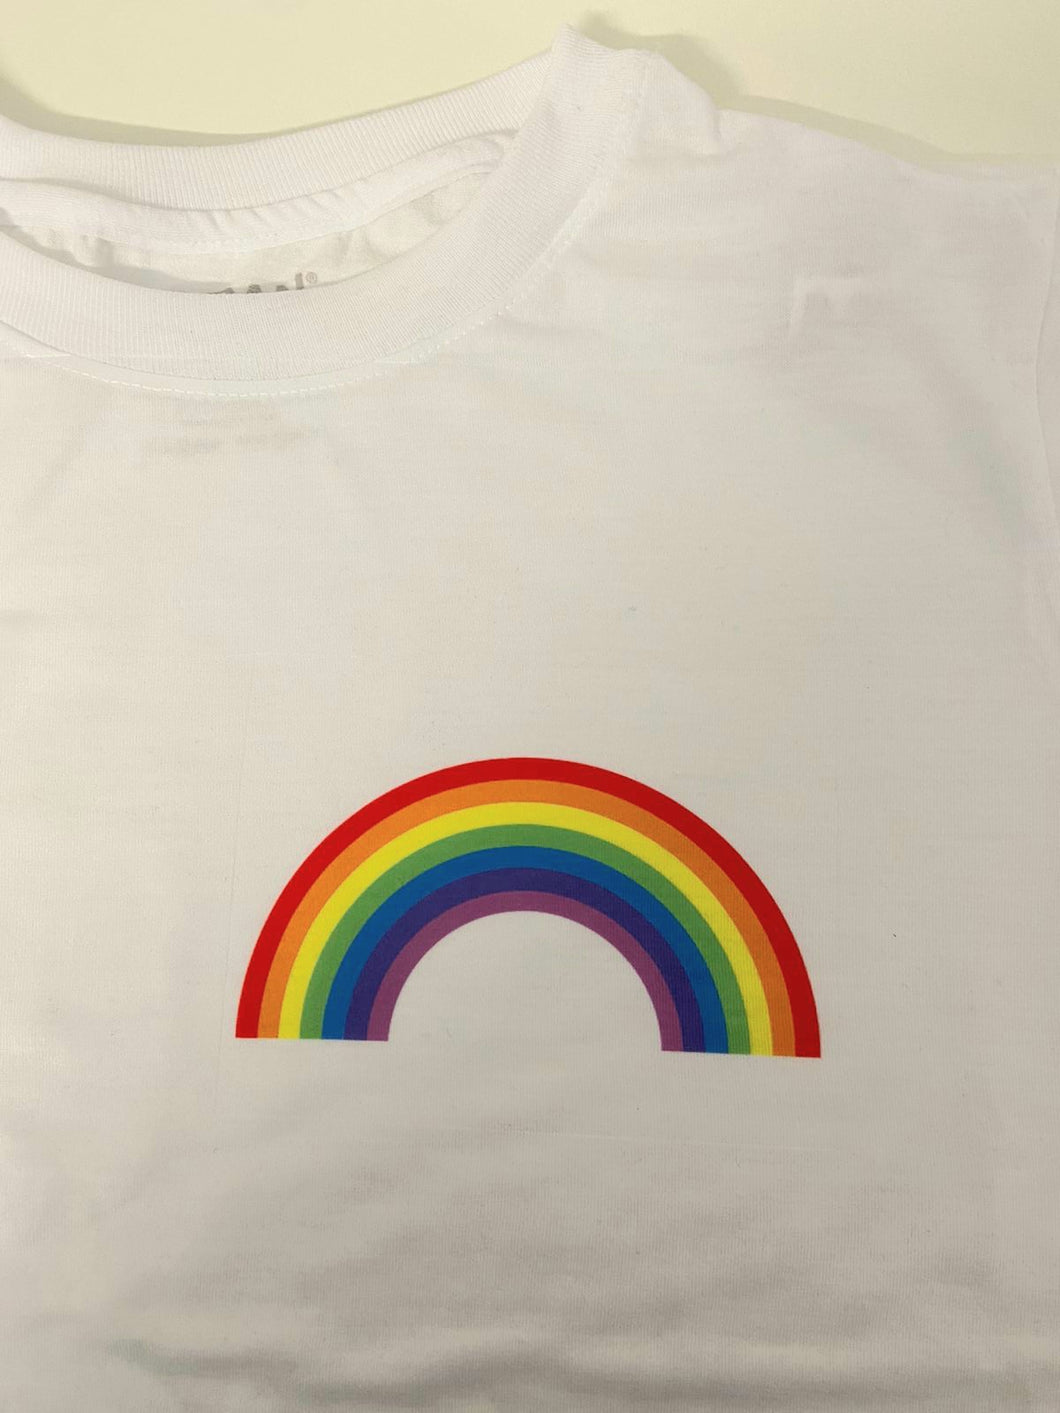 RAINBOW Children's T-shirt || White || Unisex || NHS || Can Be Personalised